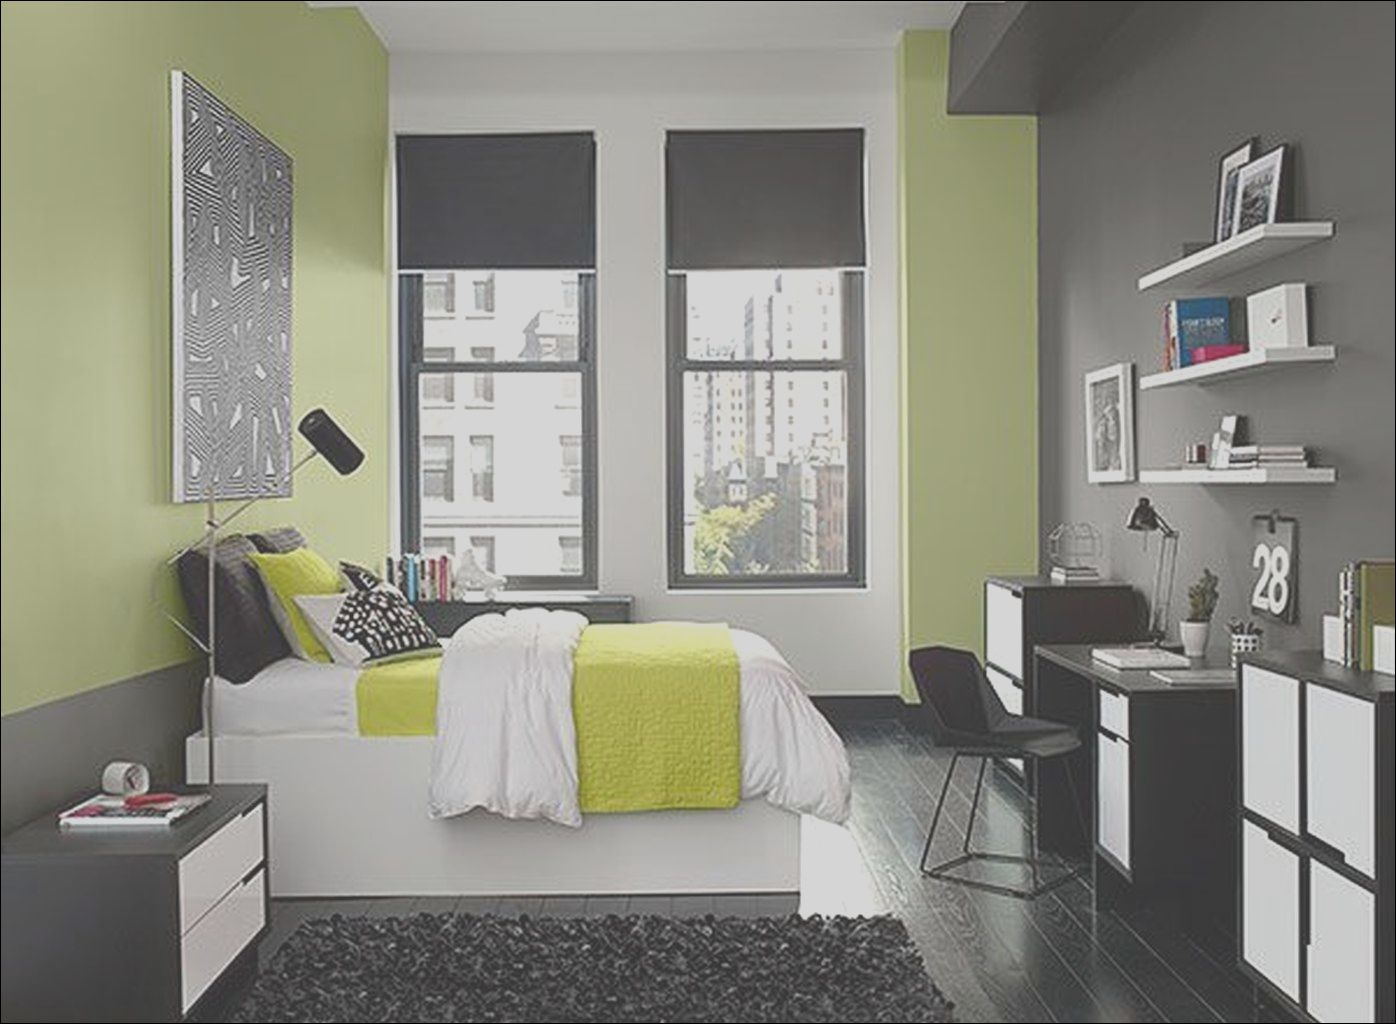 11 Advanced Apartment Interior Colors Image  Dormitorios